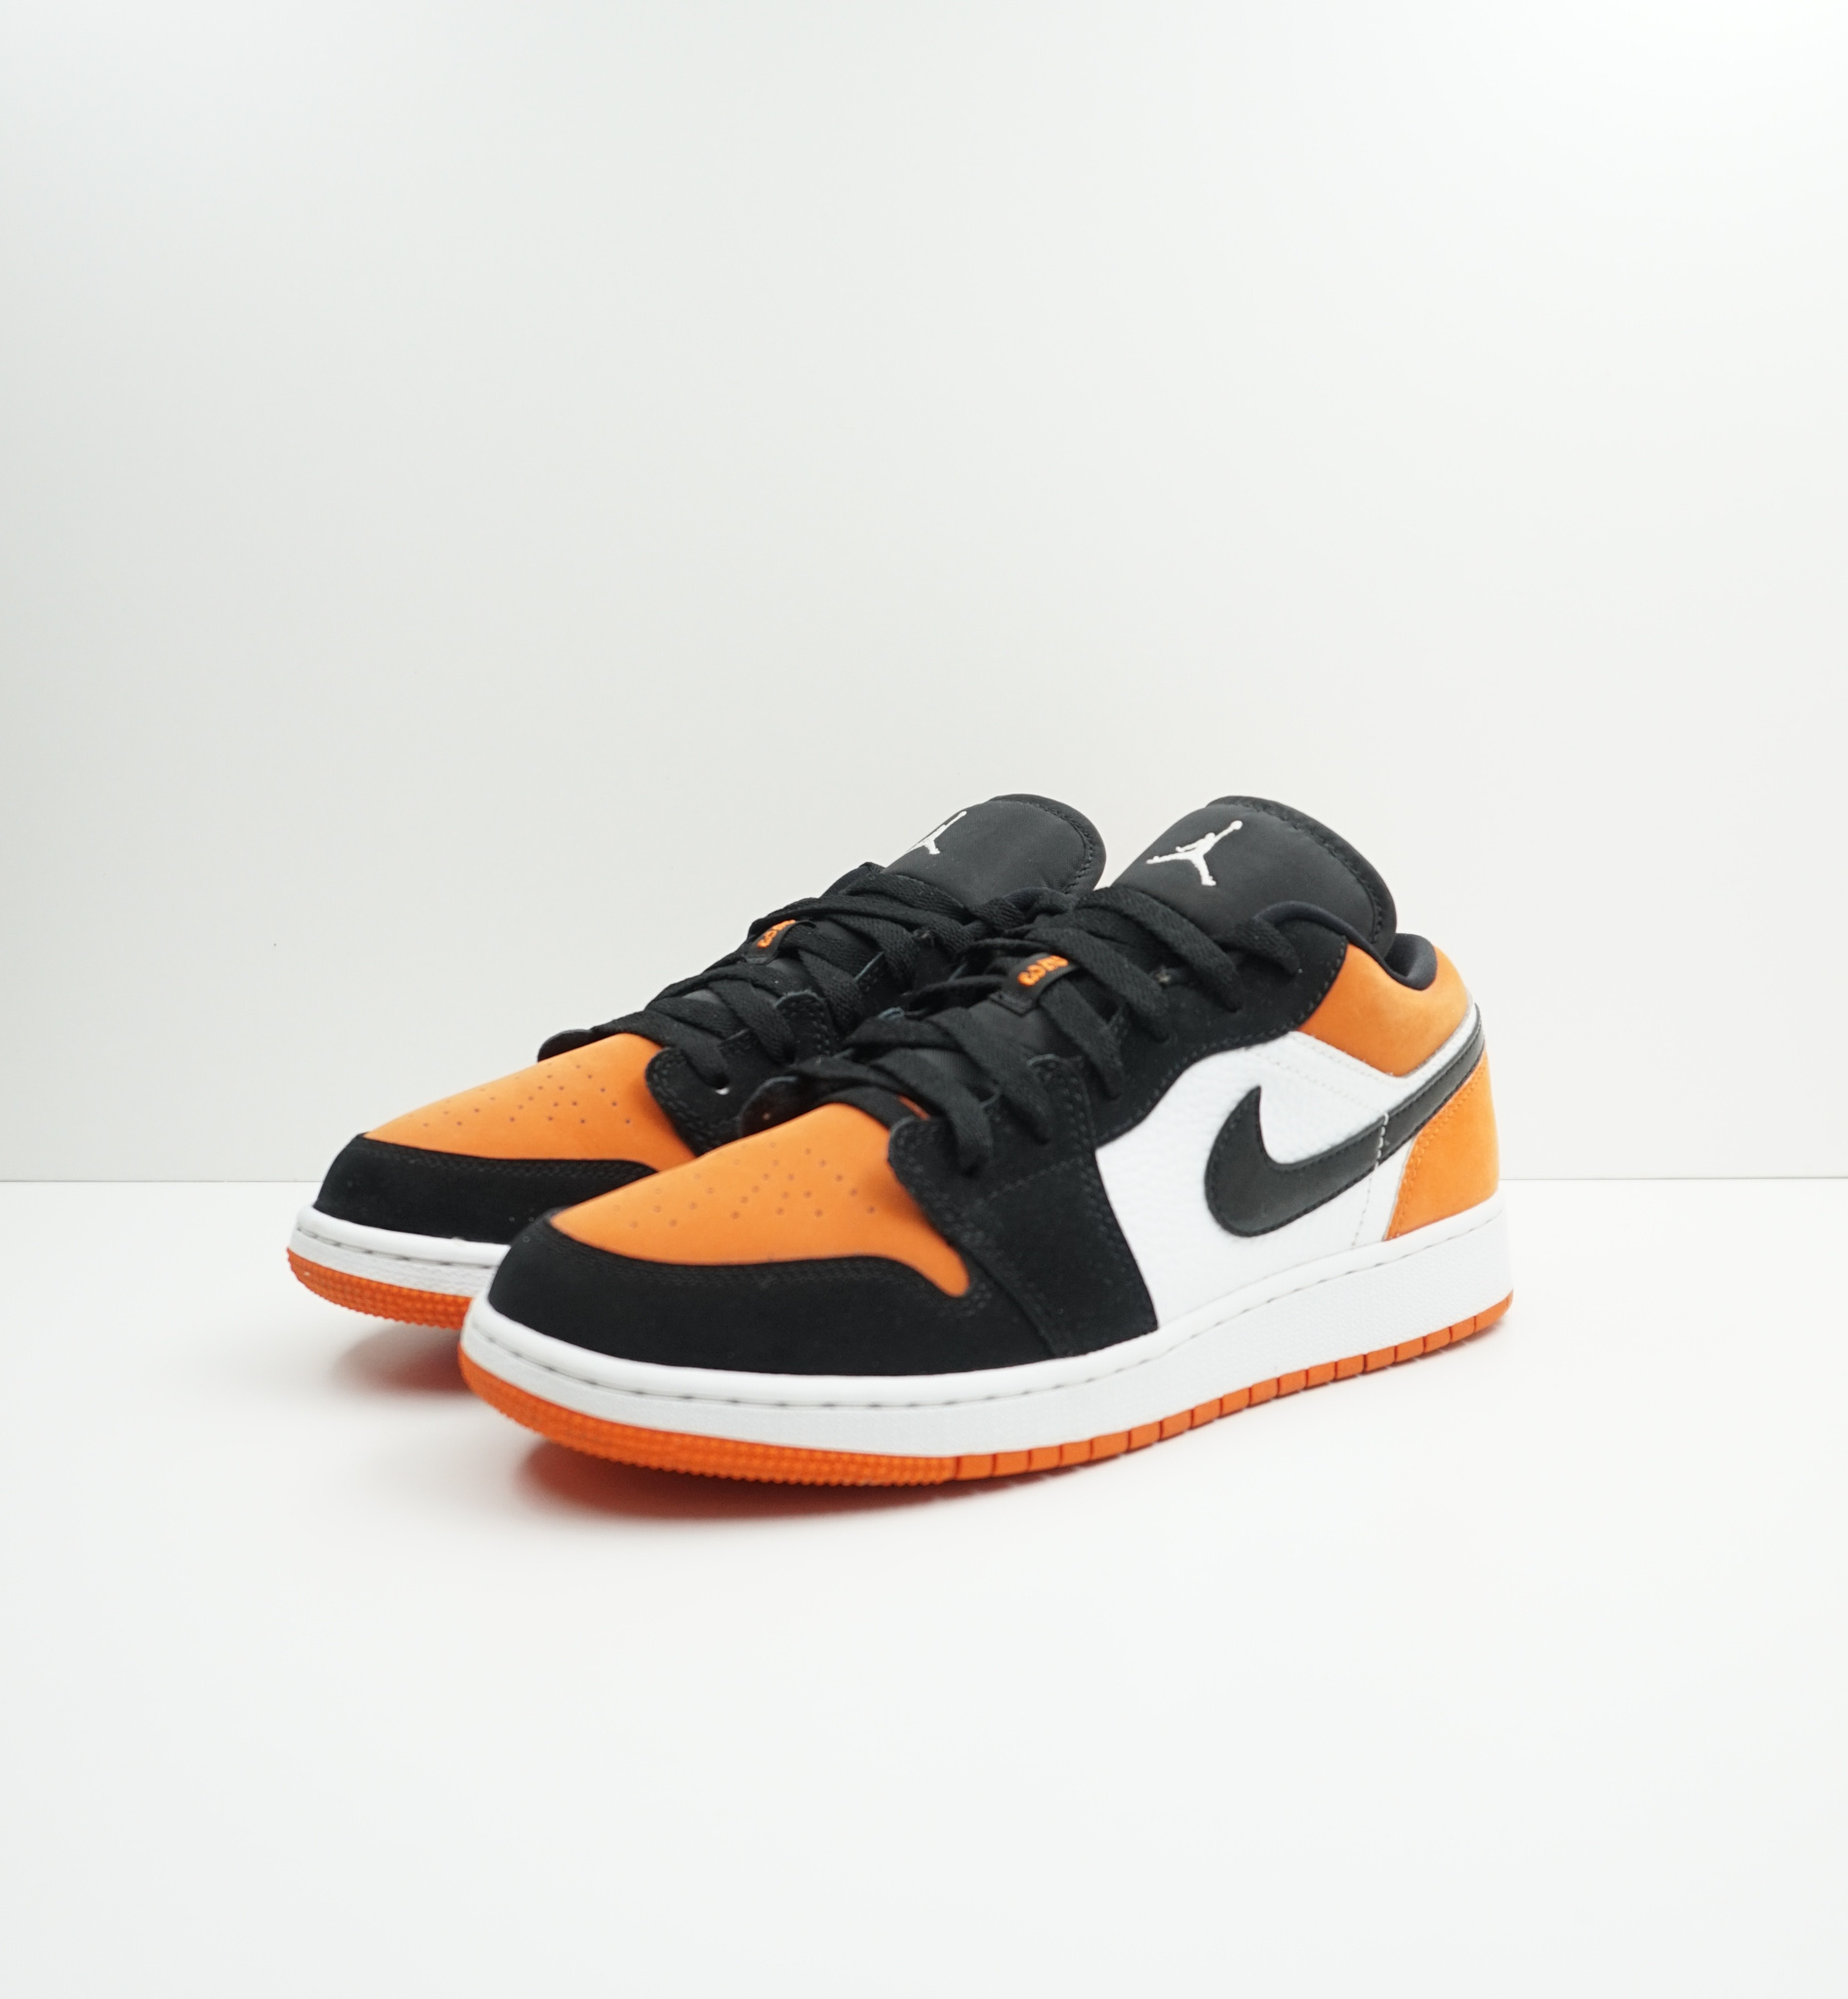 Jordan 1 Low Shattered Backboard (GS)